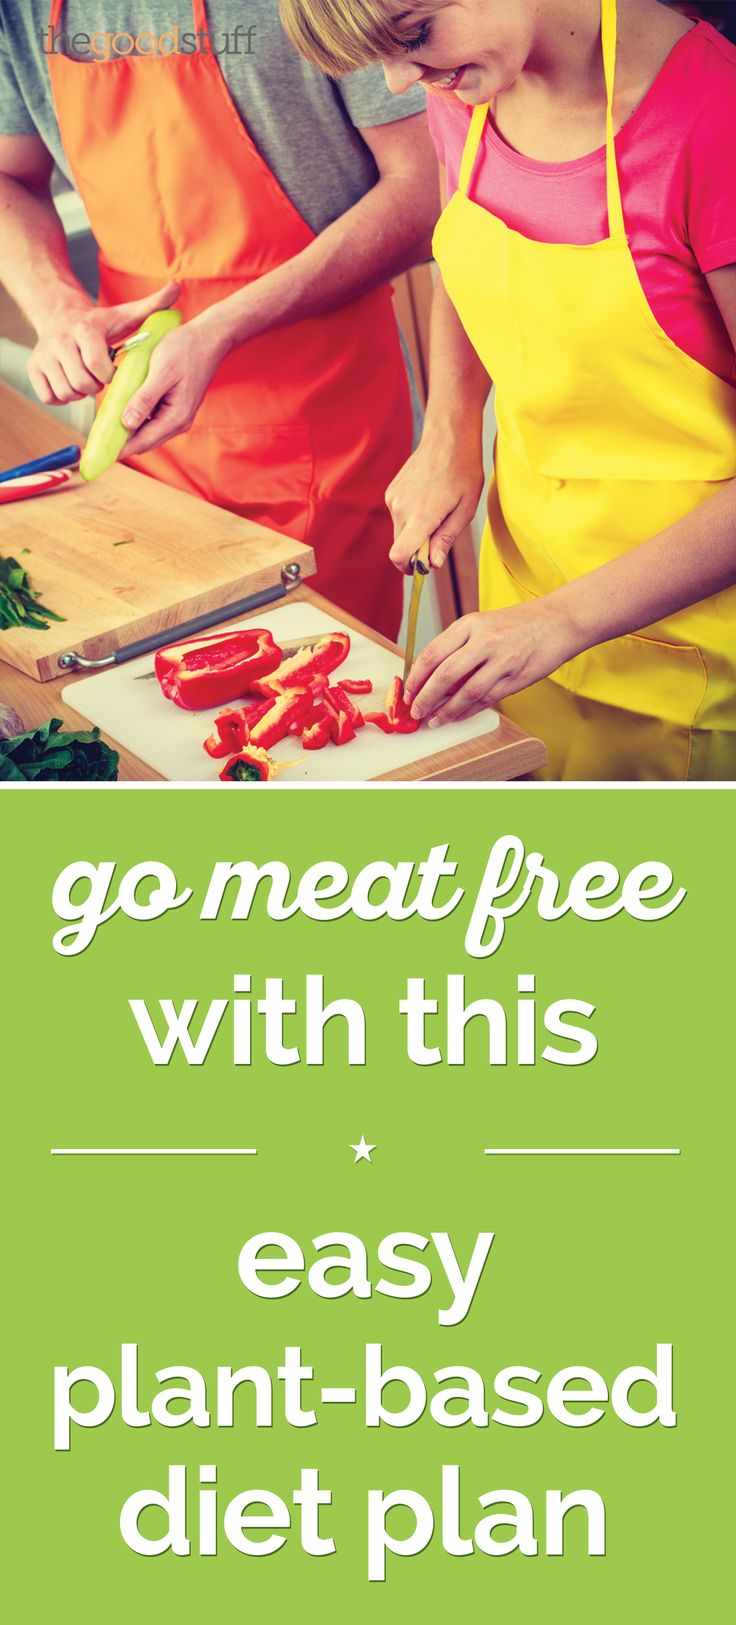 Go Meat-Free With This Easy Plant-Based Diet Plan - thegoodstuff